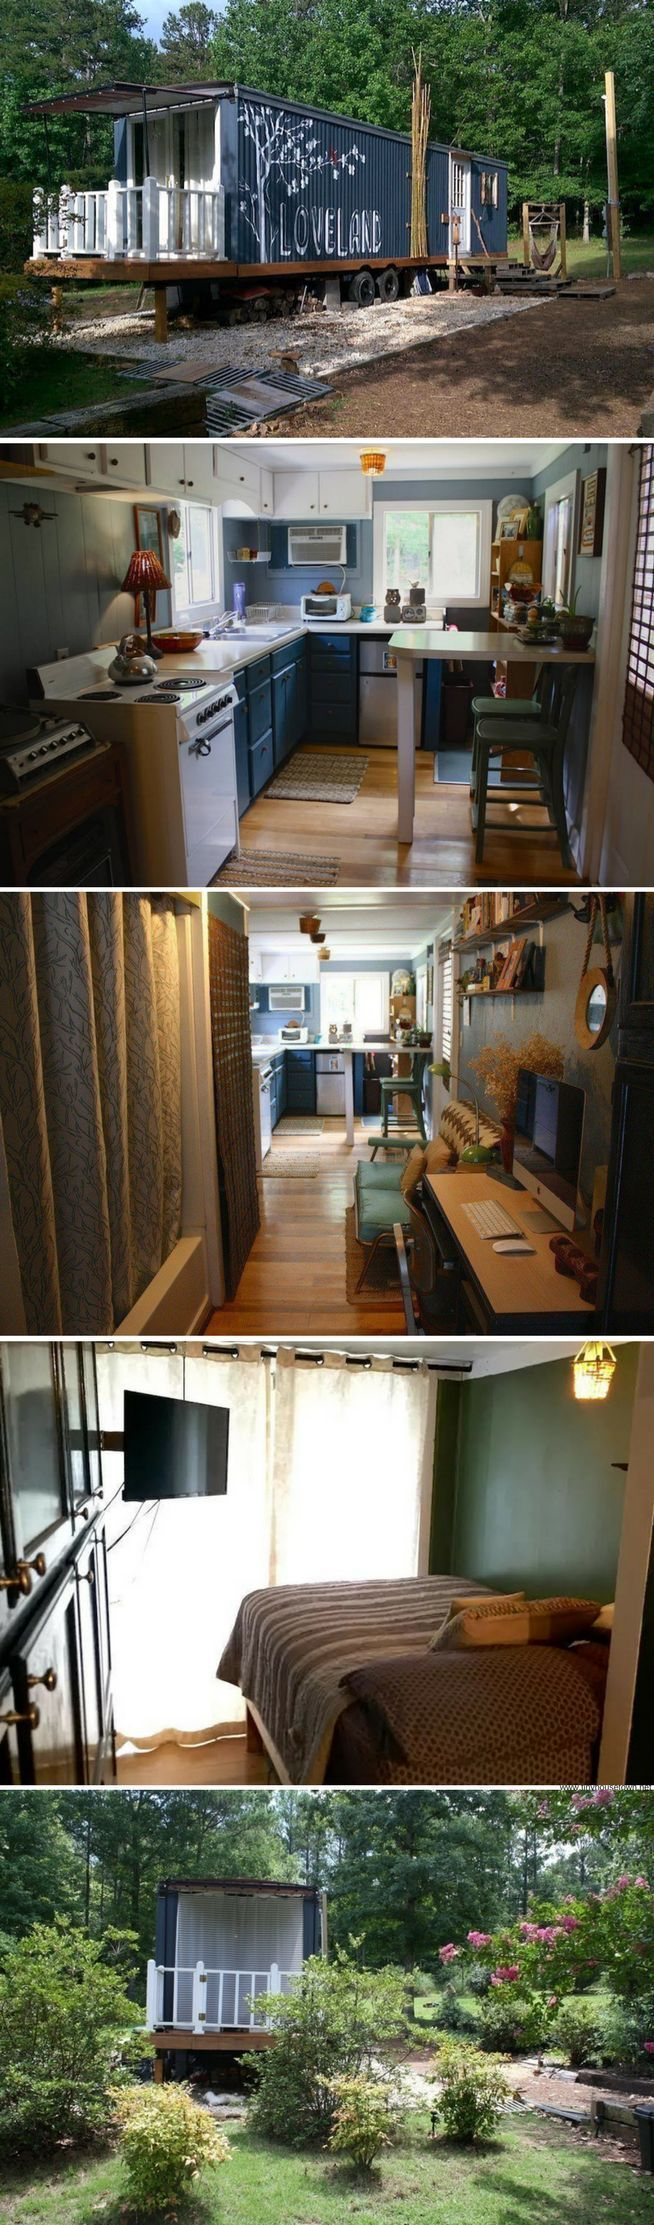 31 best Container home images on Pinterest | Container architecture ...